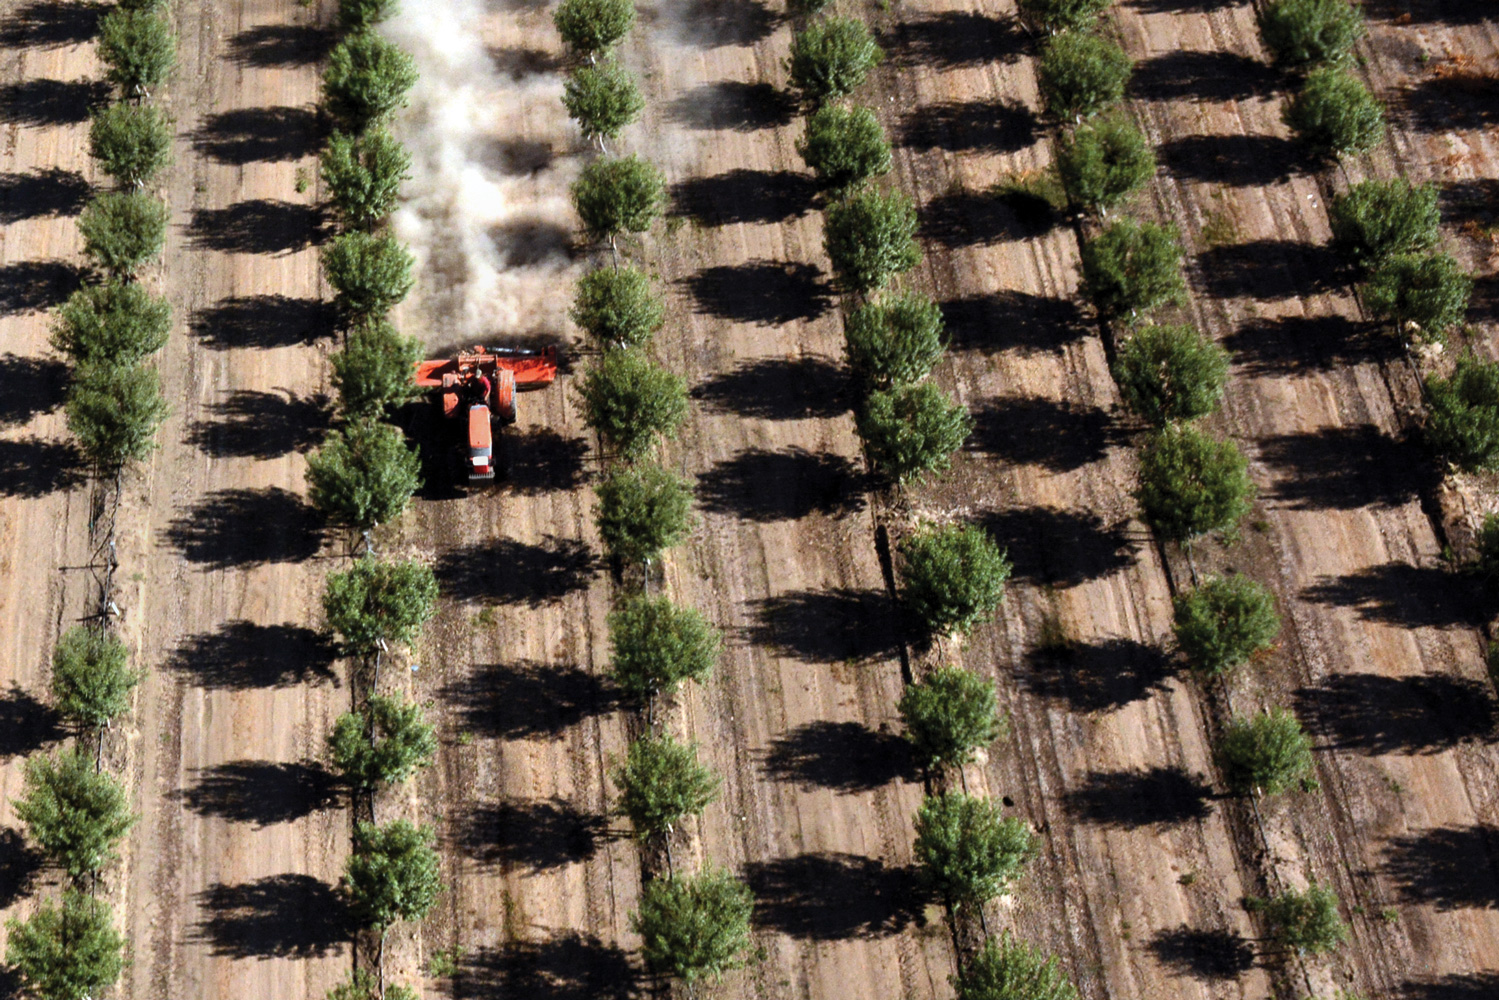 A dry future weighs heavy on California agriculture (Growing heavy